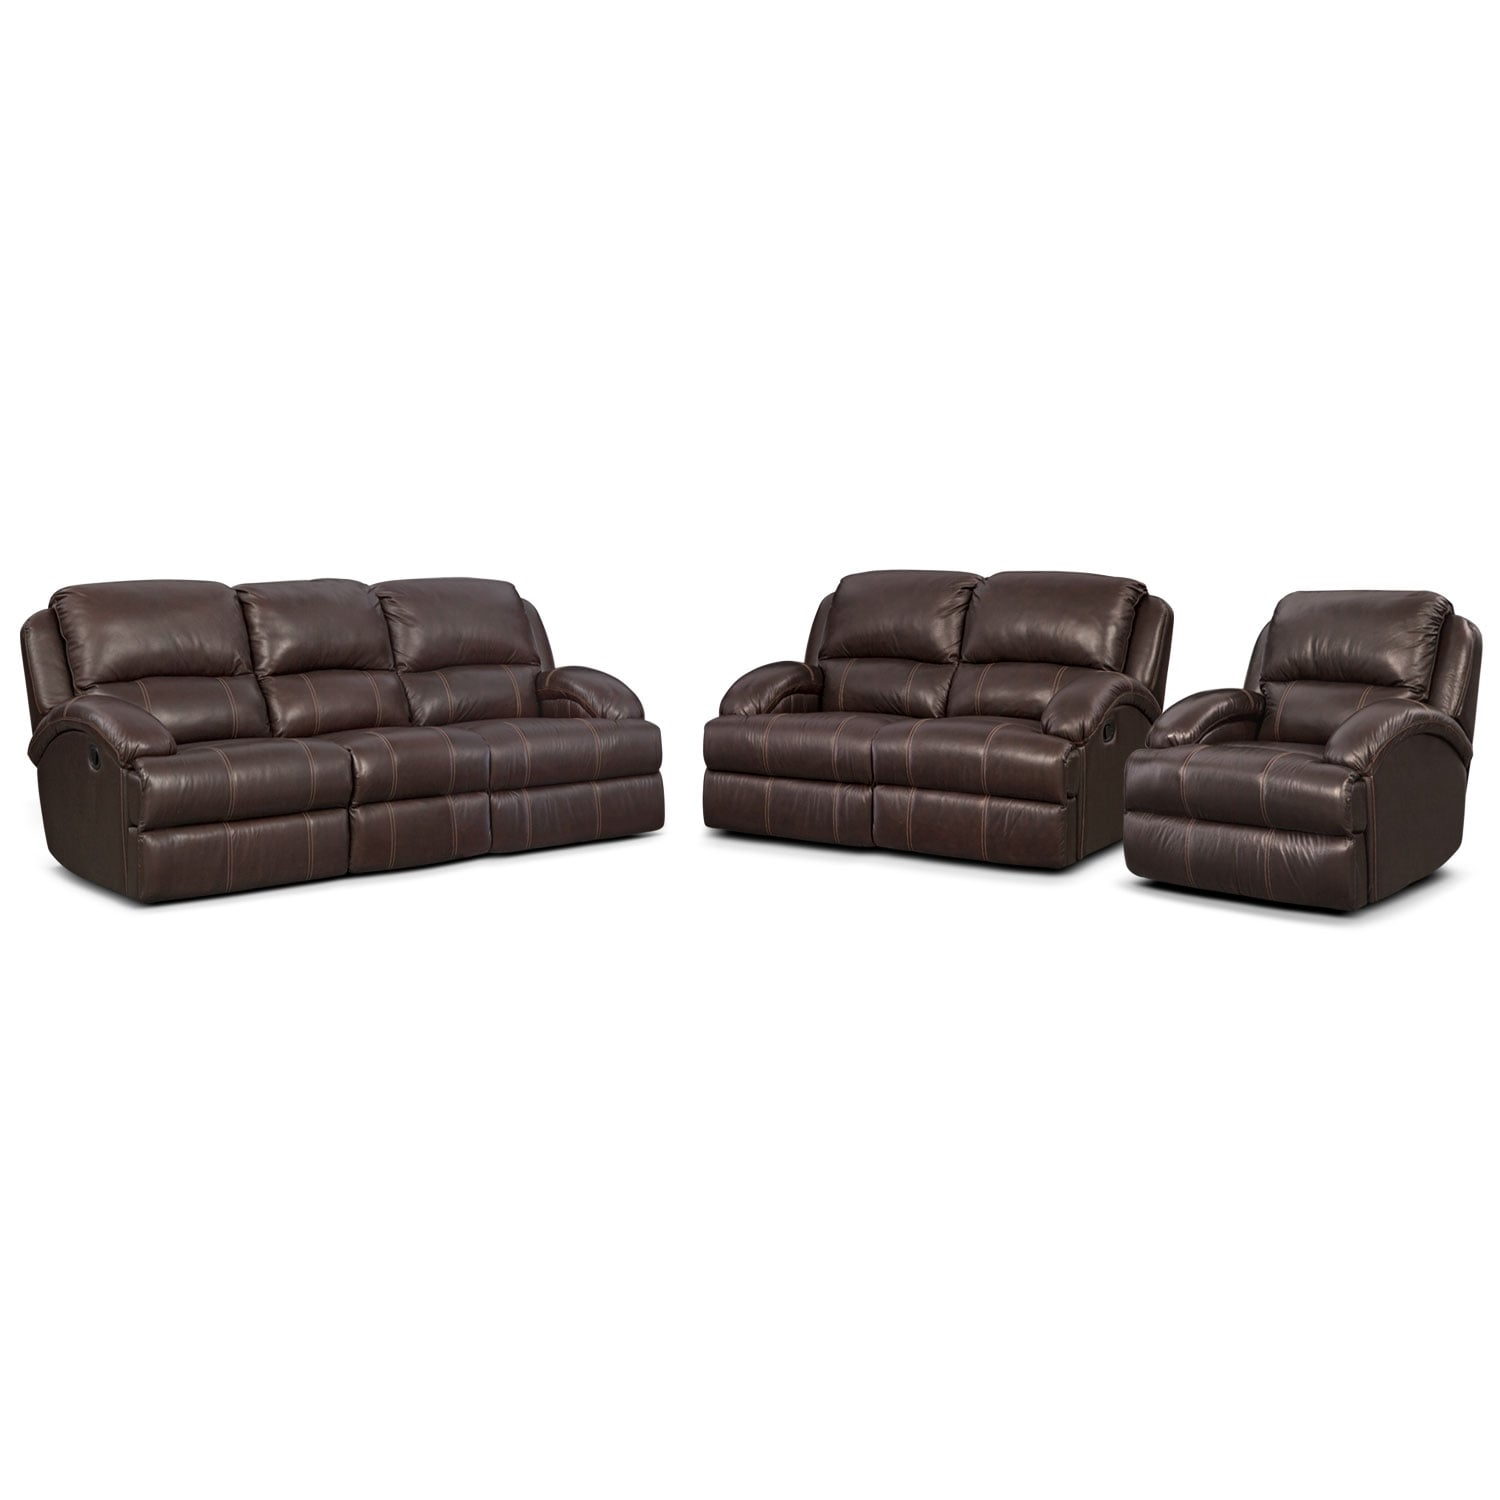 Living Room Furniture - Nolan Dual Reclining Sofa, Reclining Loveseat and Glider Recliner Set - Chocolate